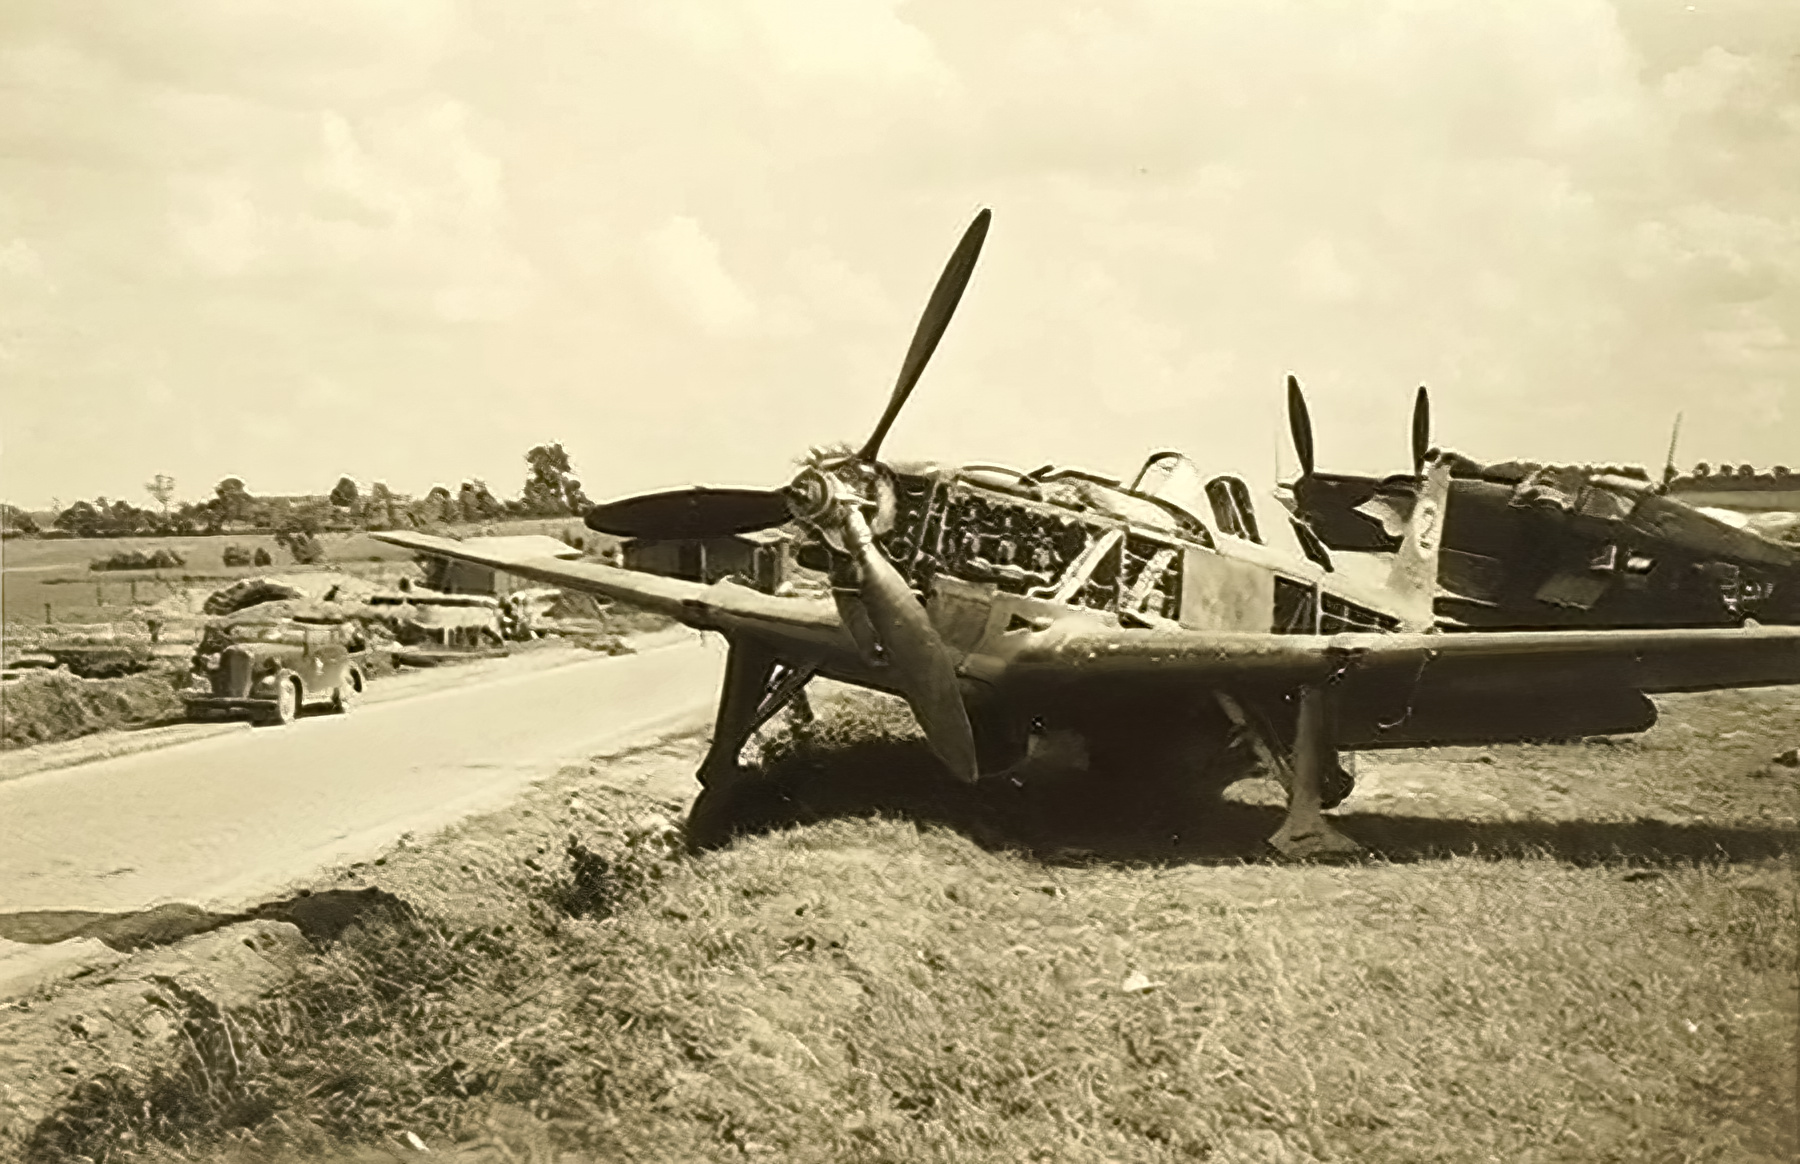 French Airforce Morane Saulnier MS 406C1 grounded at Cambrai airbase France 1940 ebay 01